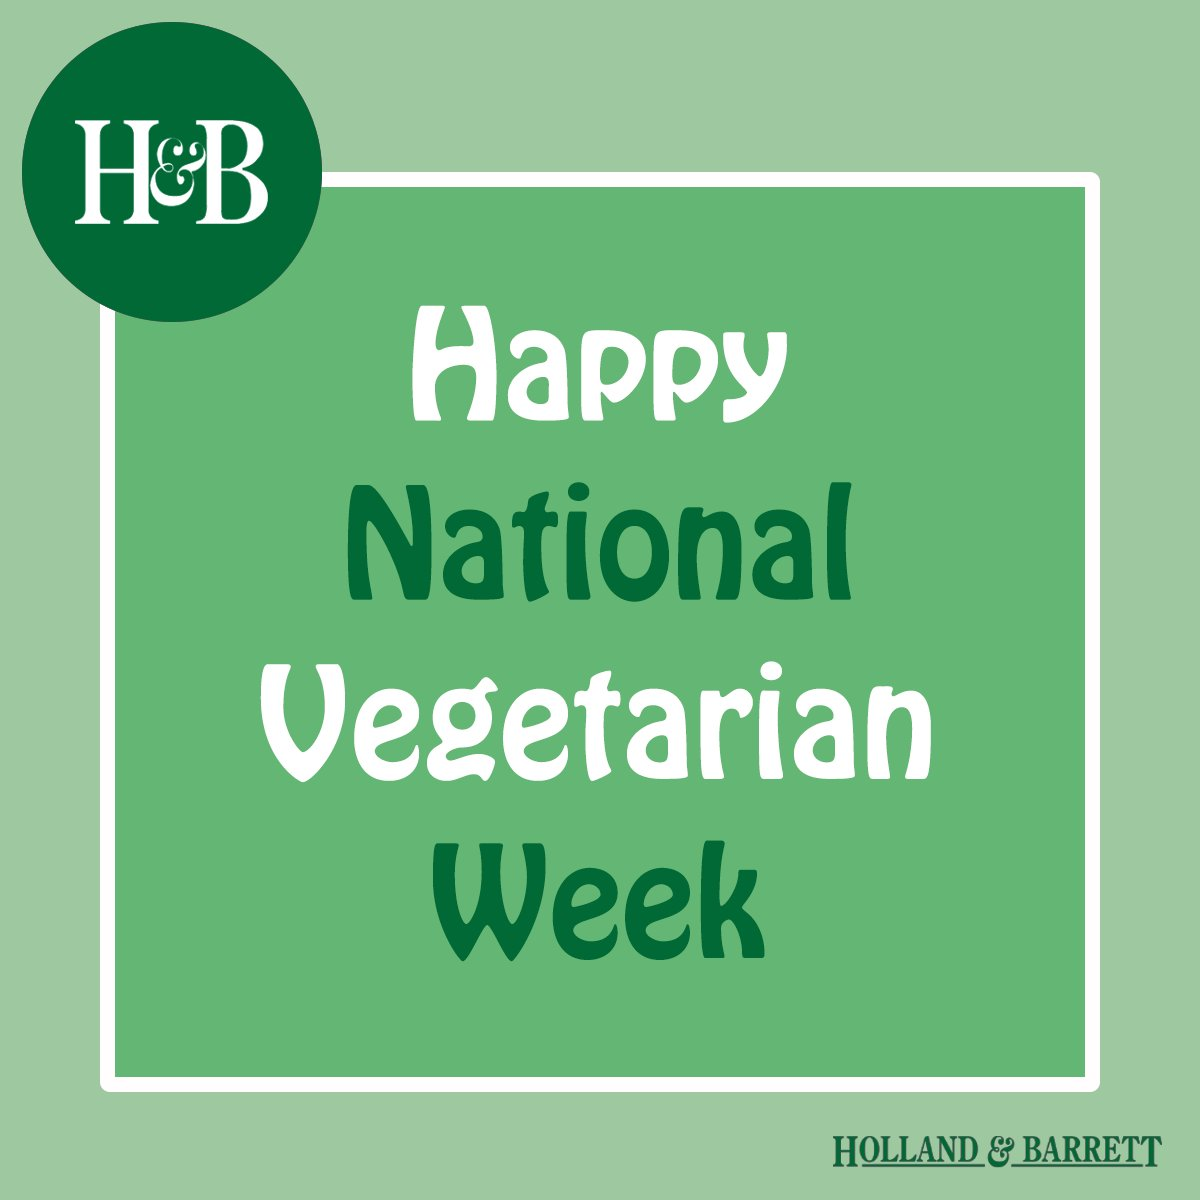 Happy #NationalVegetarianWeek. Stay tuned for delicious recipes, top product picks & more! 🍏🌱🍅 https://t.co/GCZV3REPEV